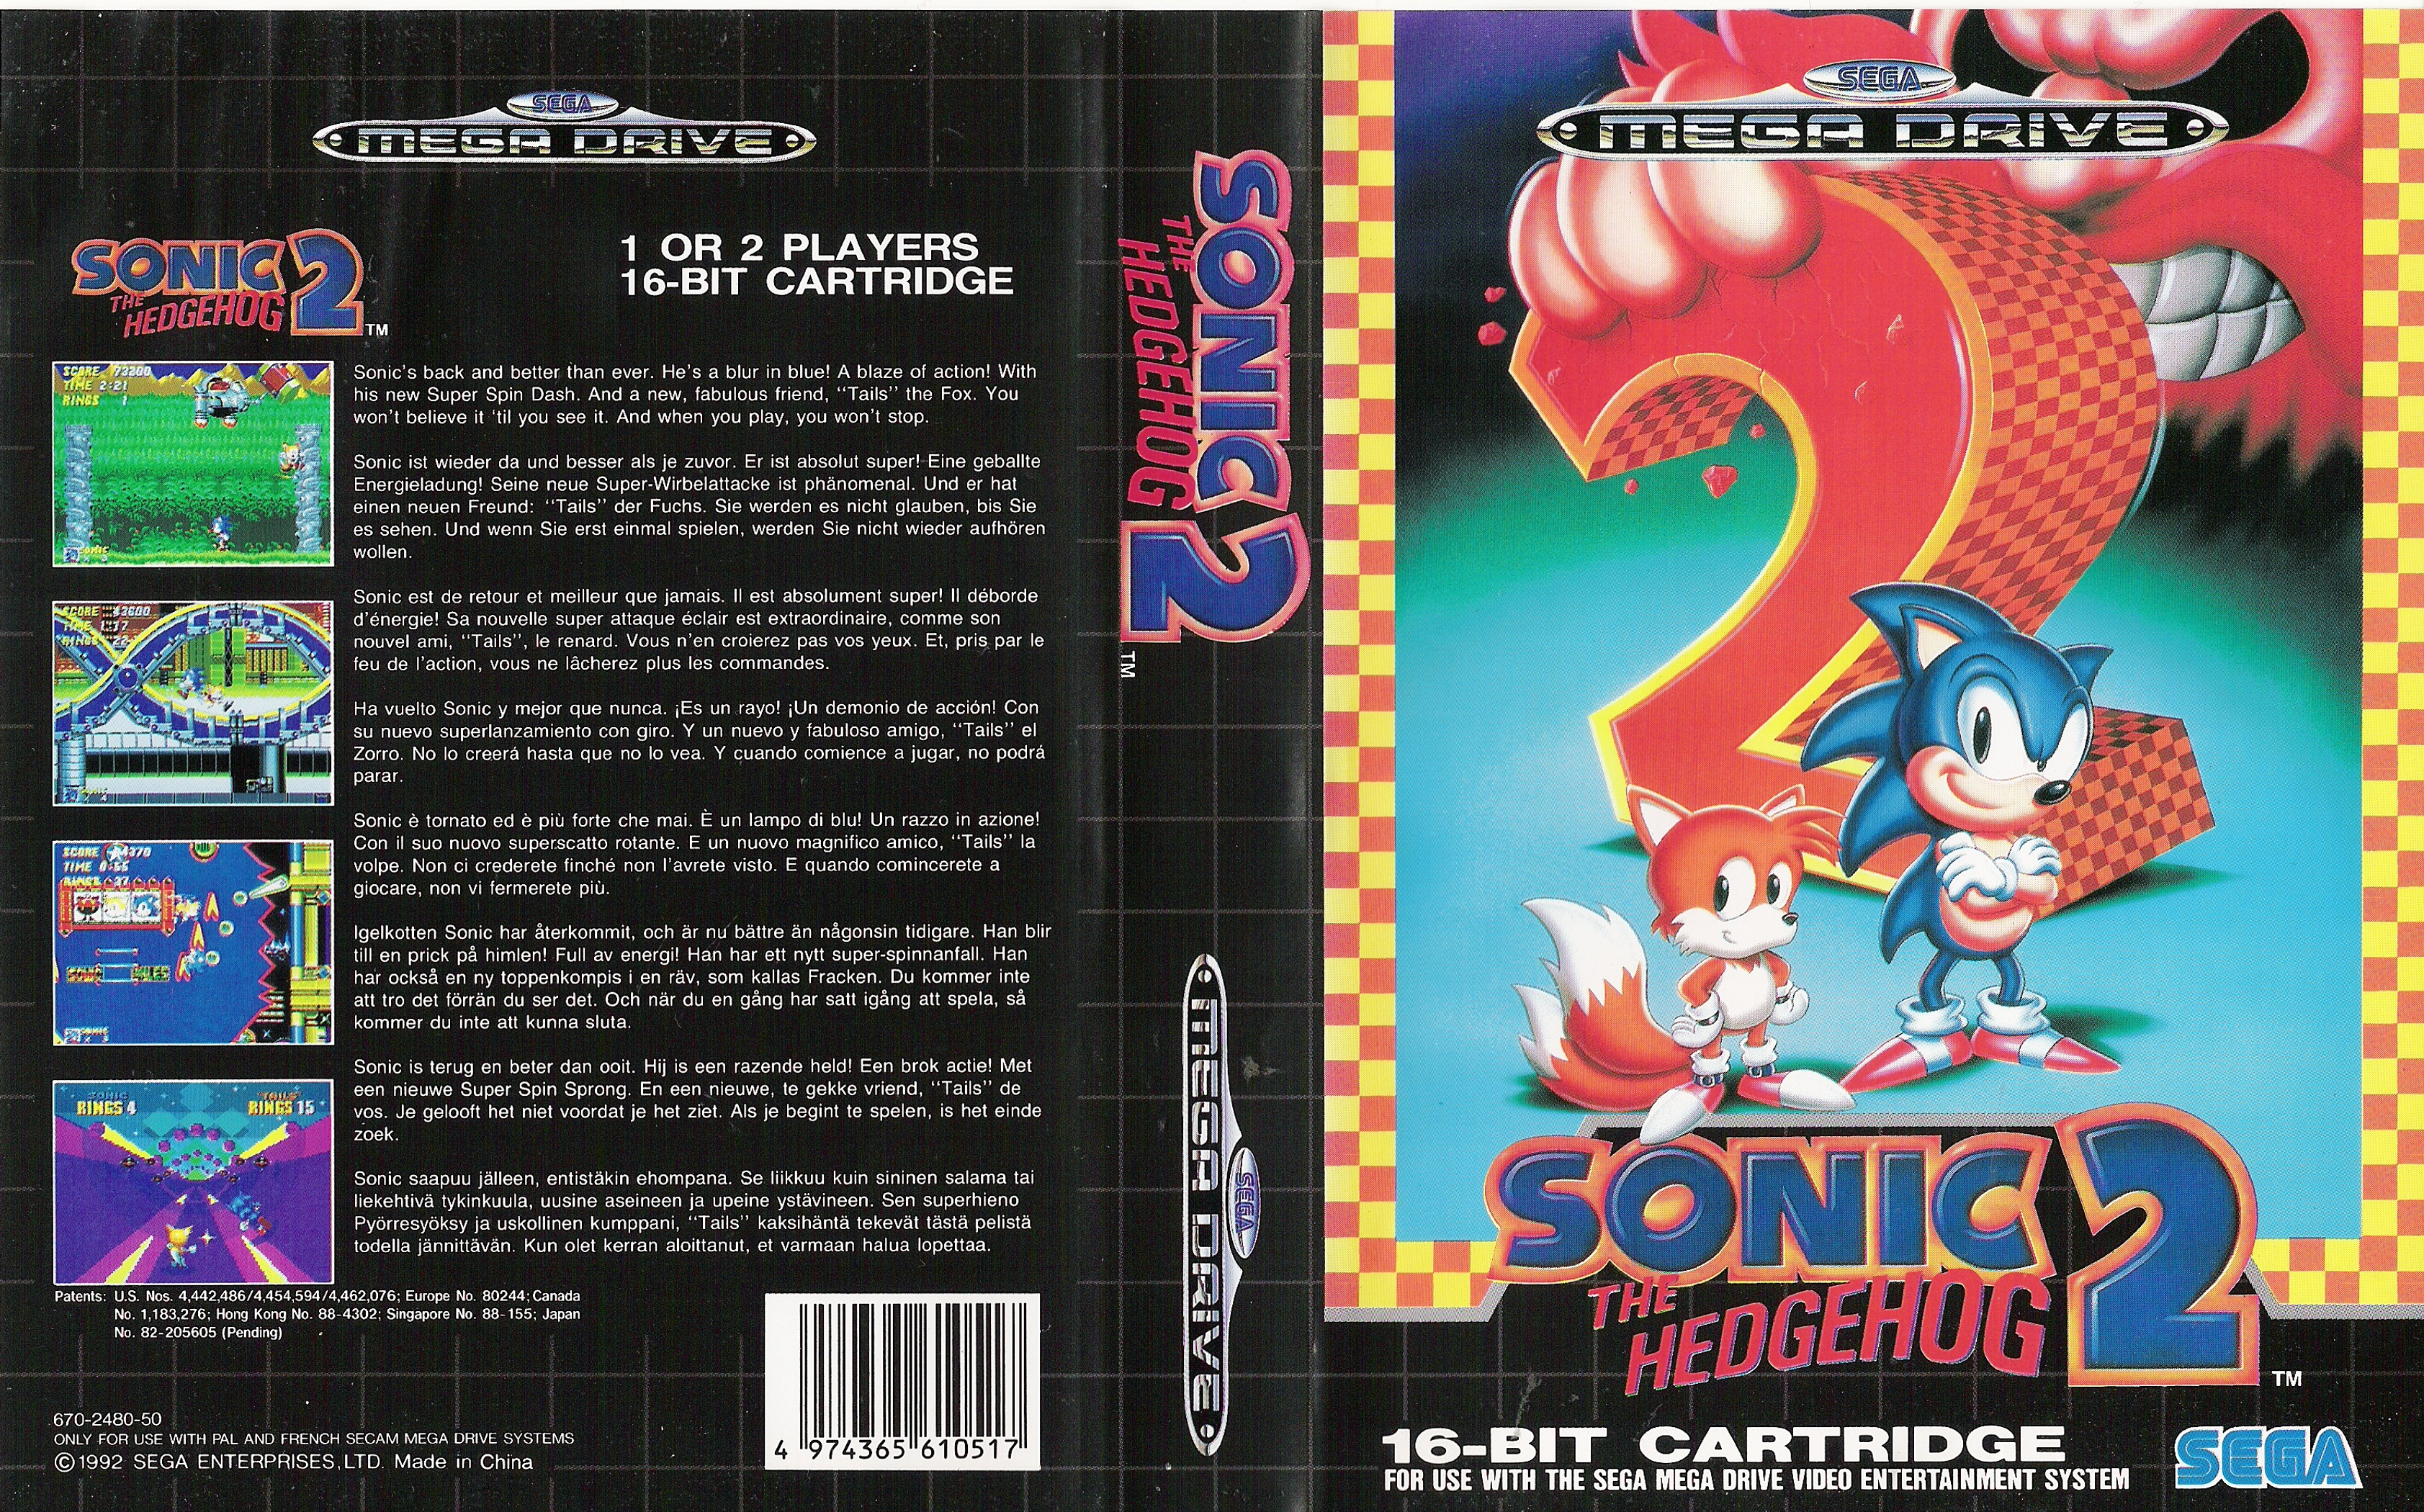 Sonic 2 Genesis Covers Cover Century Over 500 000 Album Art Covers For Free